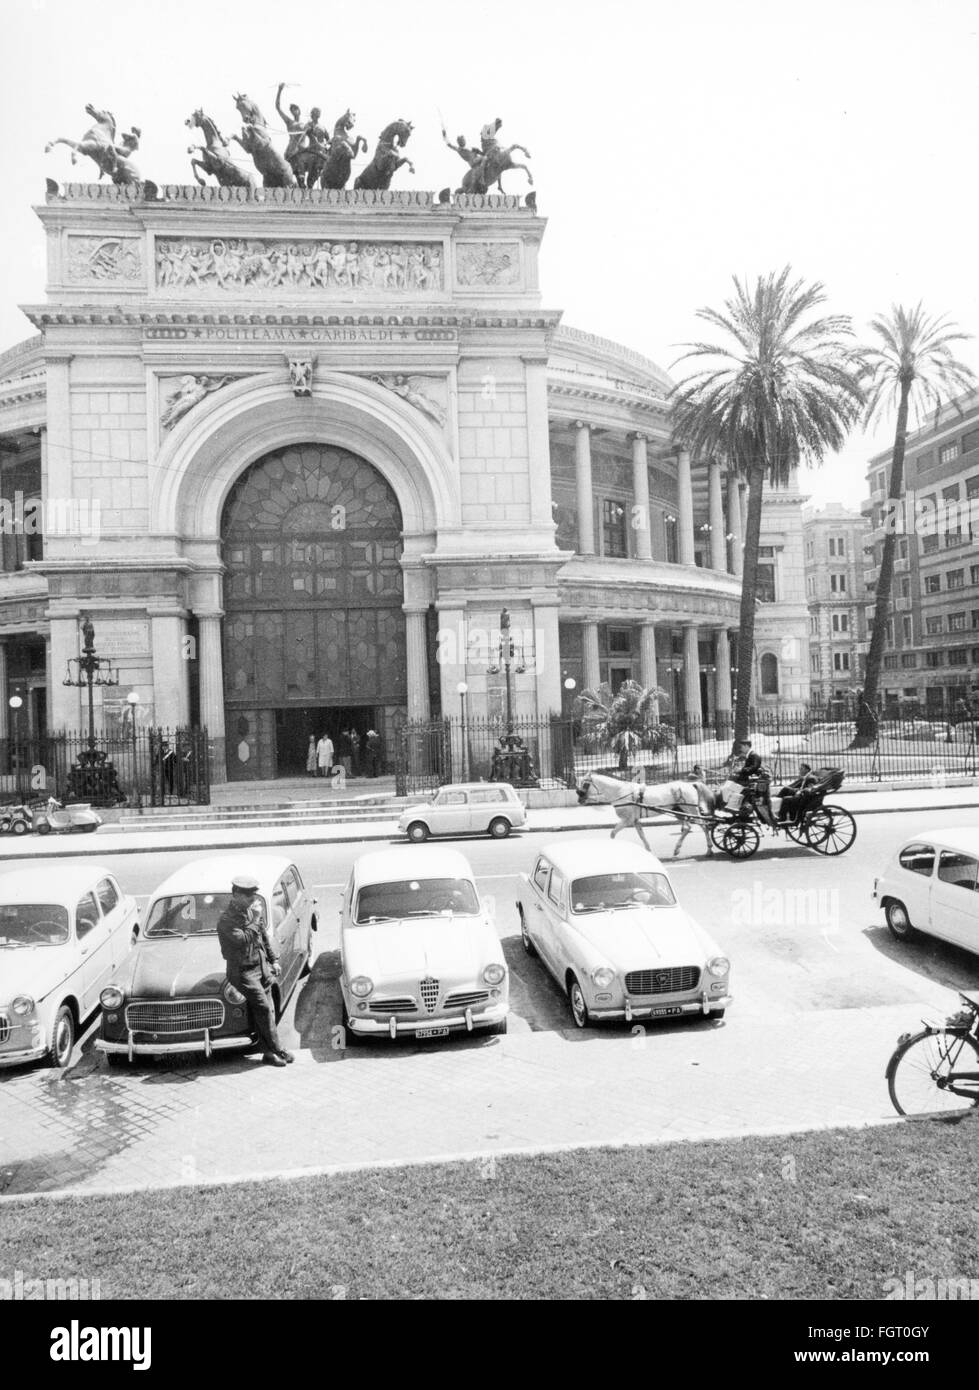 geography / travel, Italy, Palermo, buildings, Teatro Politeama Garibaldi, exterior view, 1950s, Additional-Rights Stock Photo